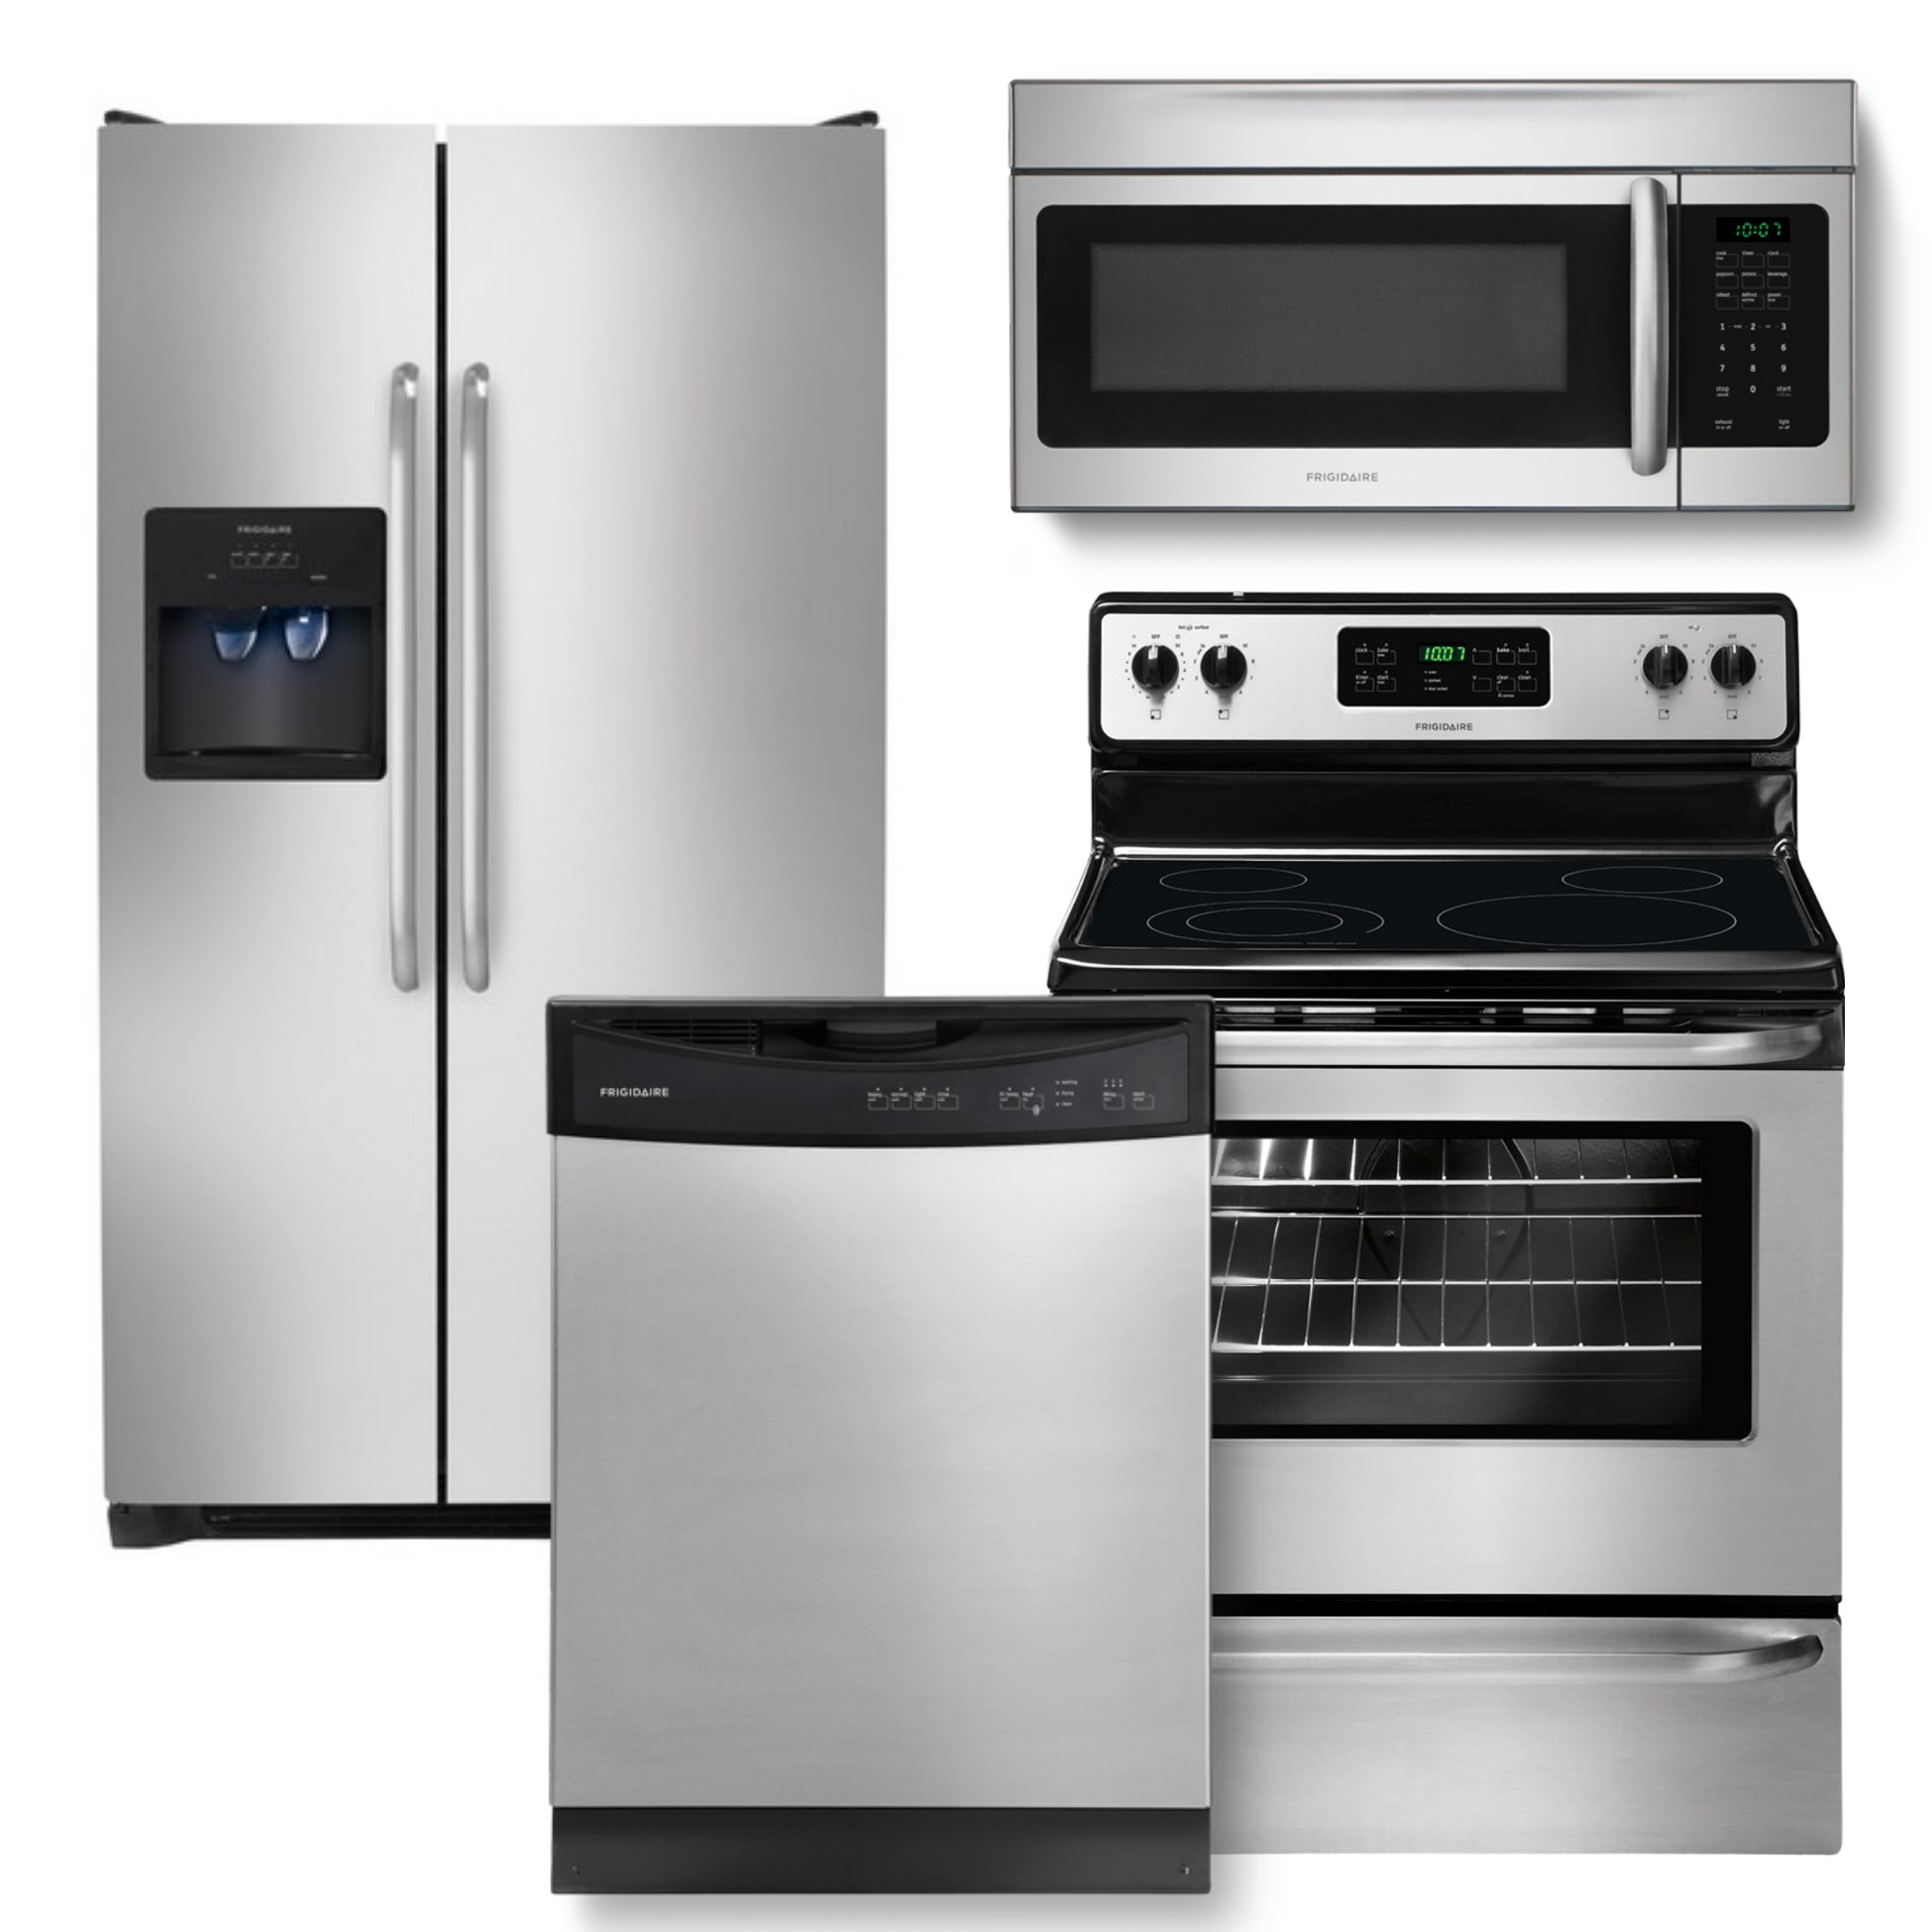 superior Best Rated Kitchen Appliance Packages #9: 20 best reviews and tests lg kitchen liances